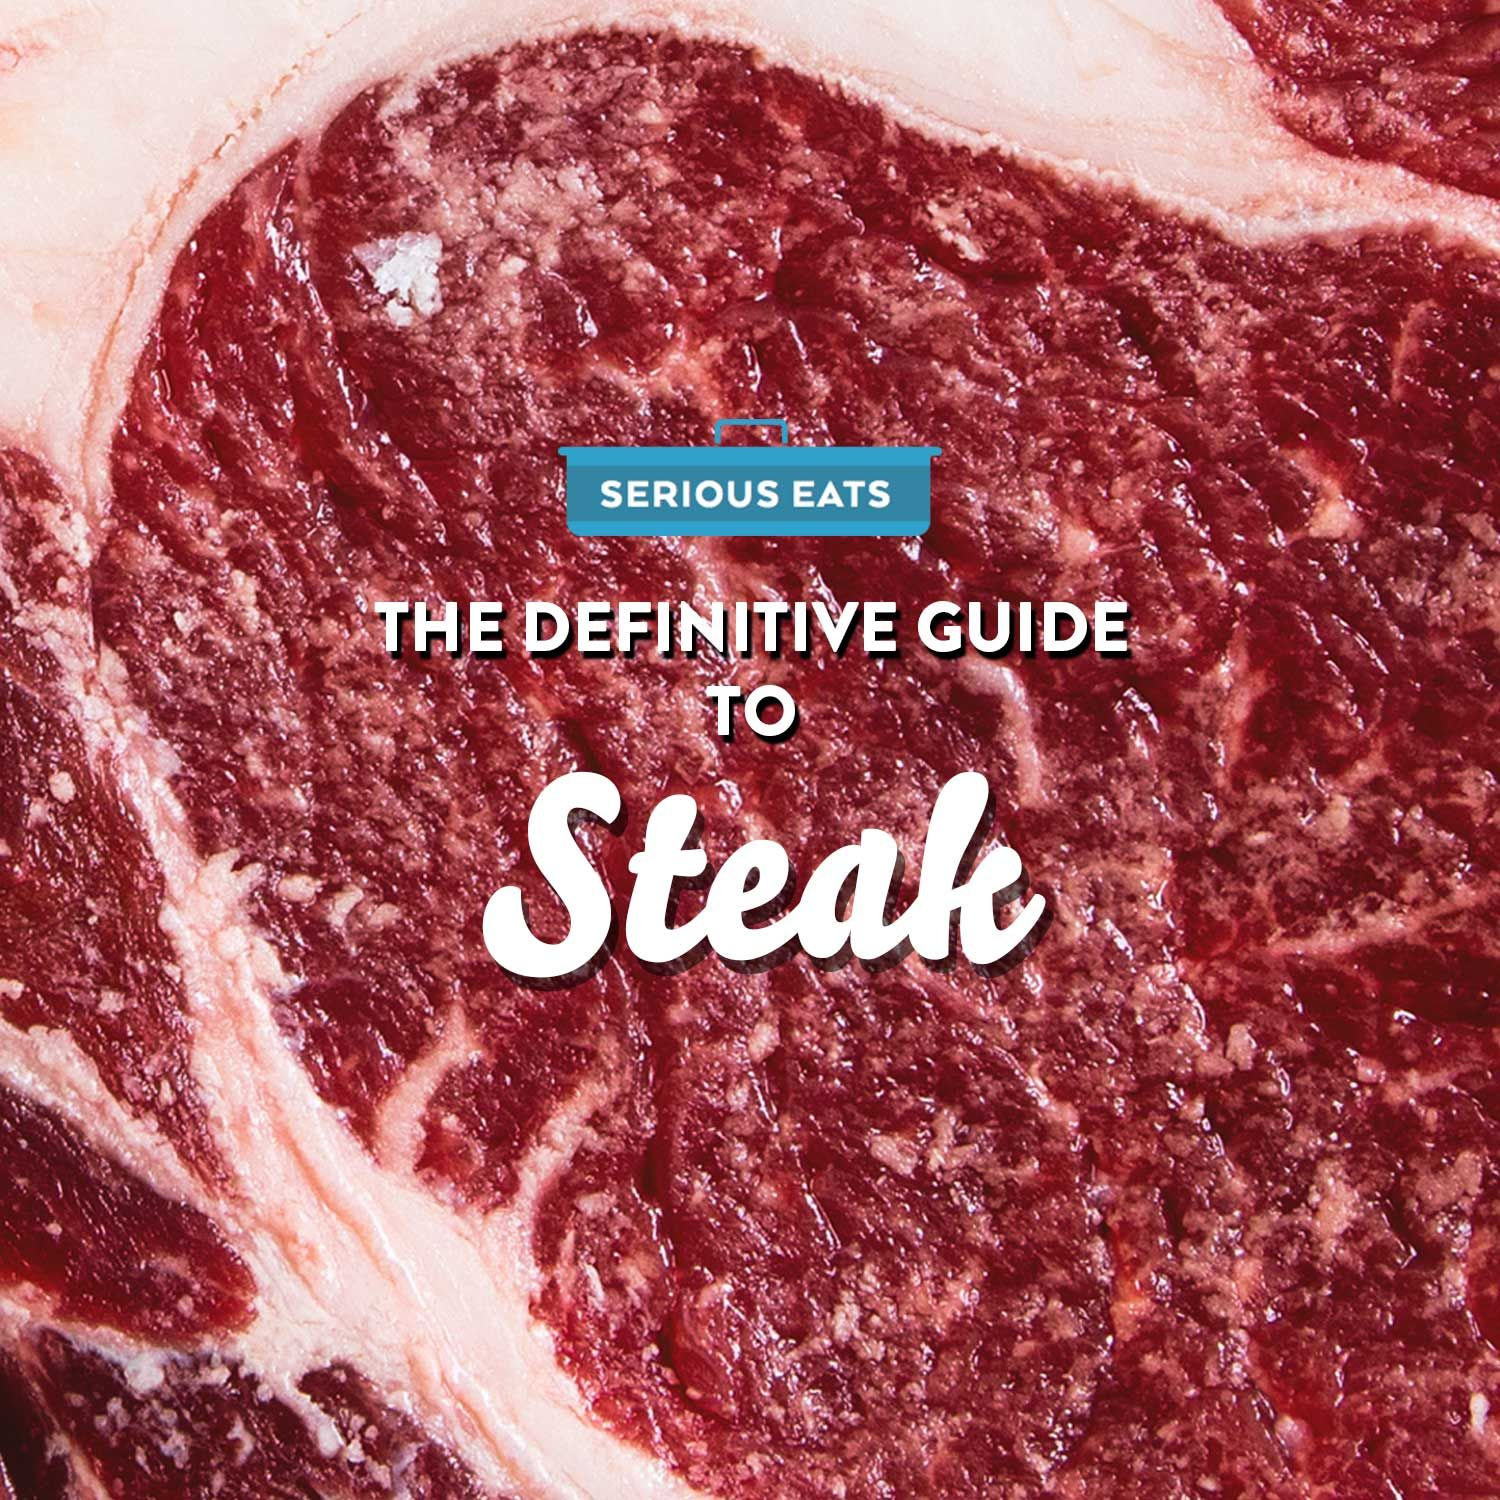 The Serious Eats Definitive Guide to Steak